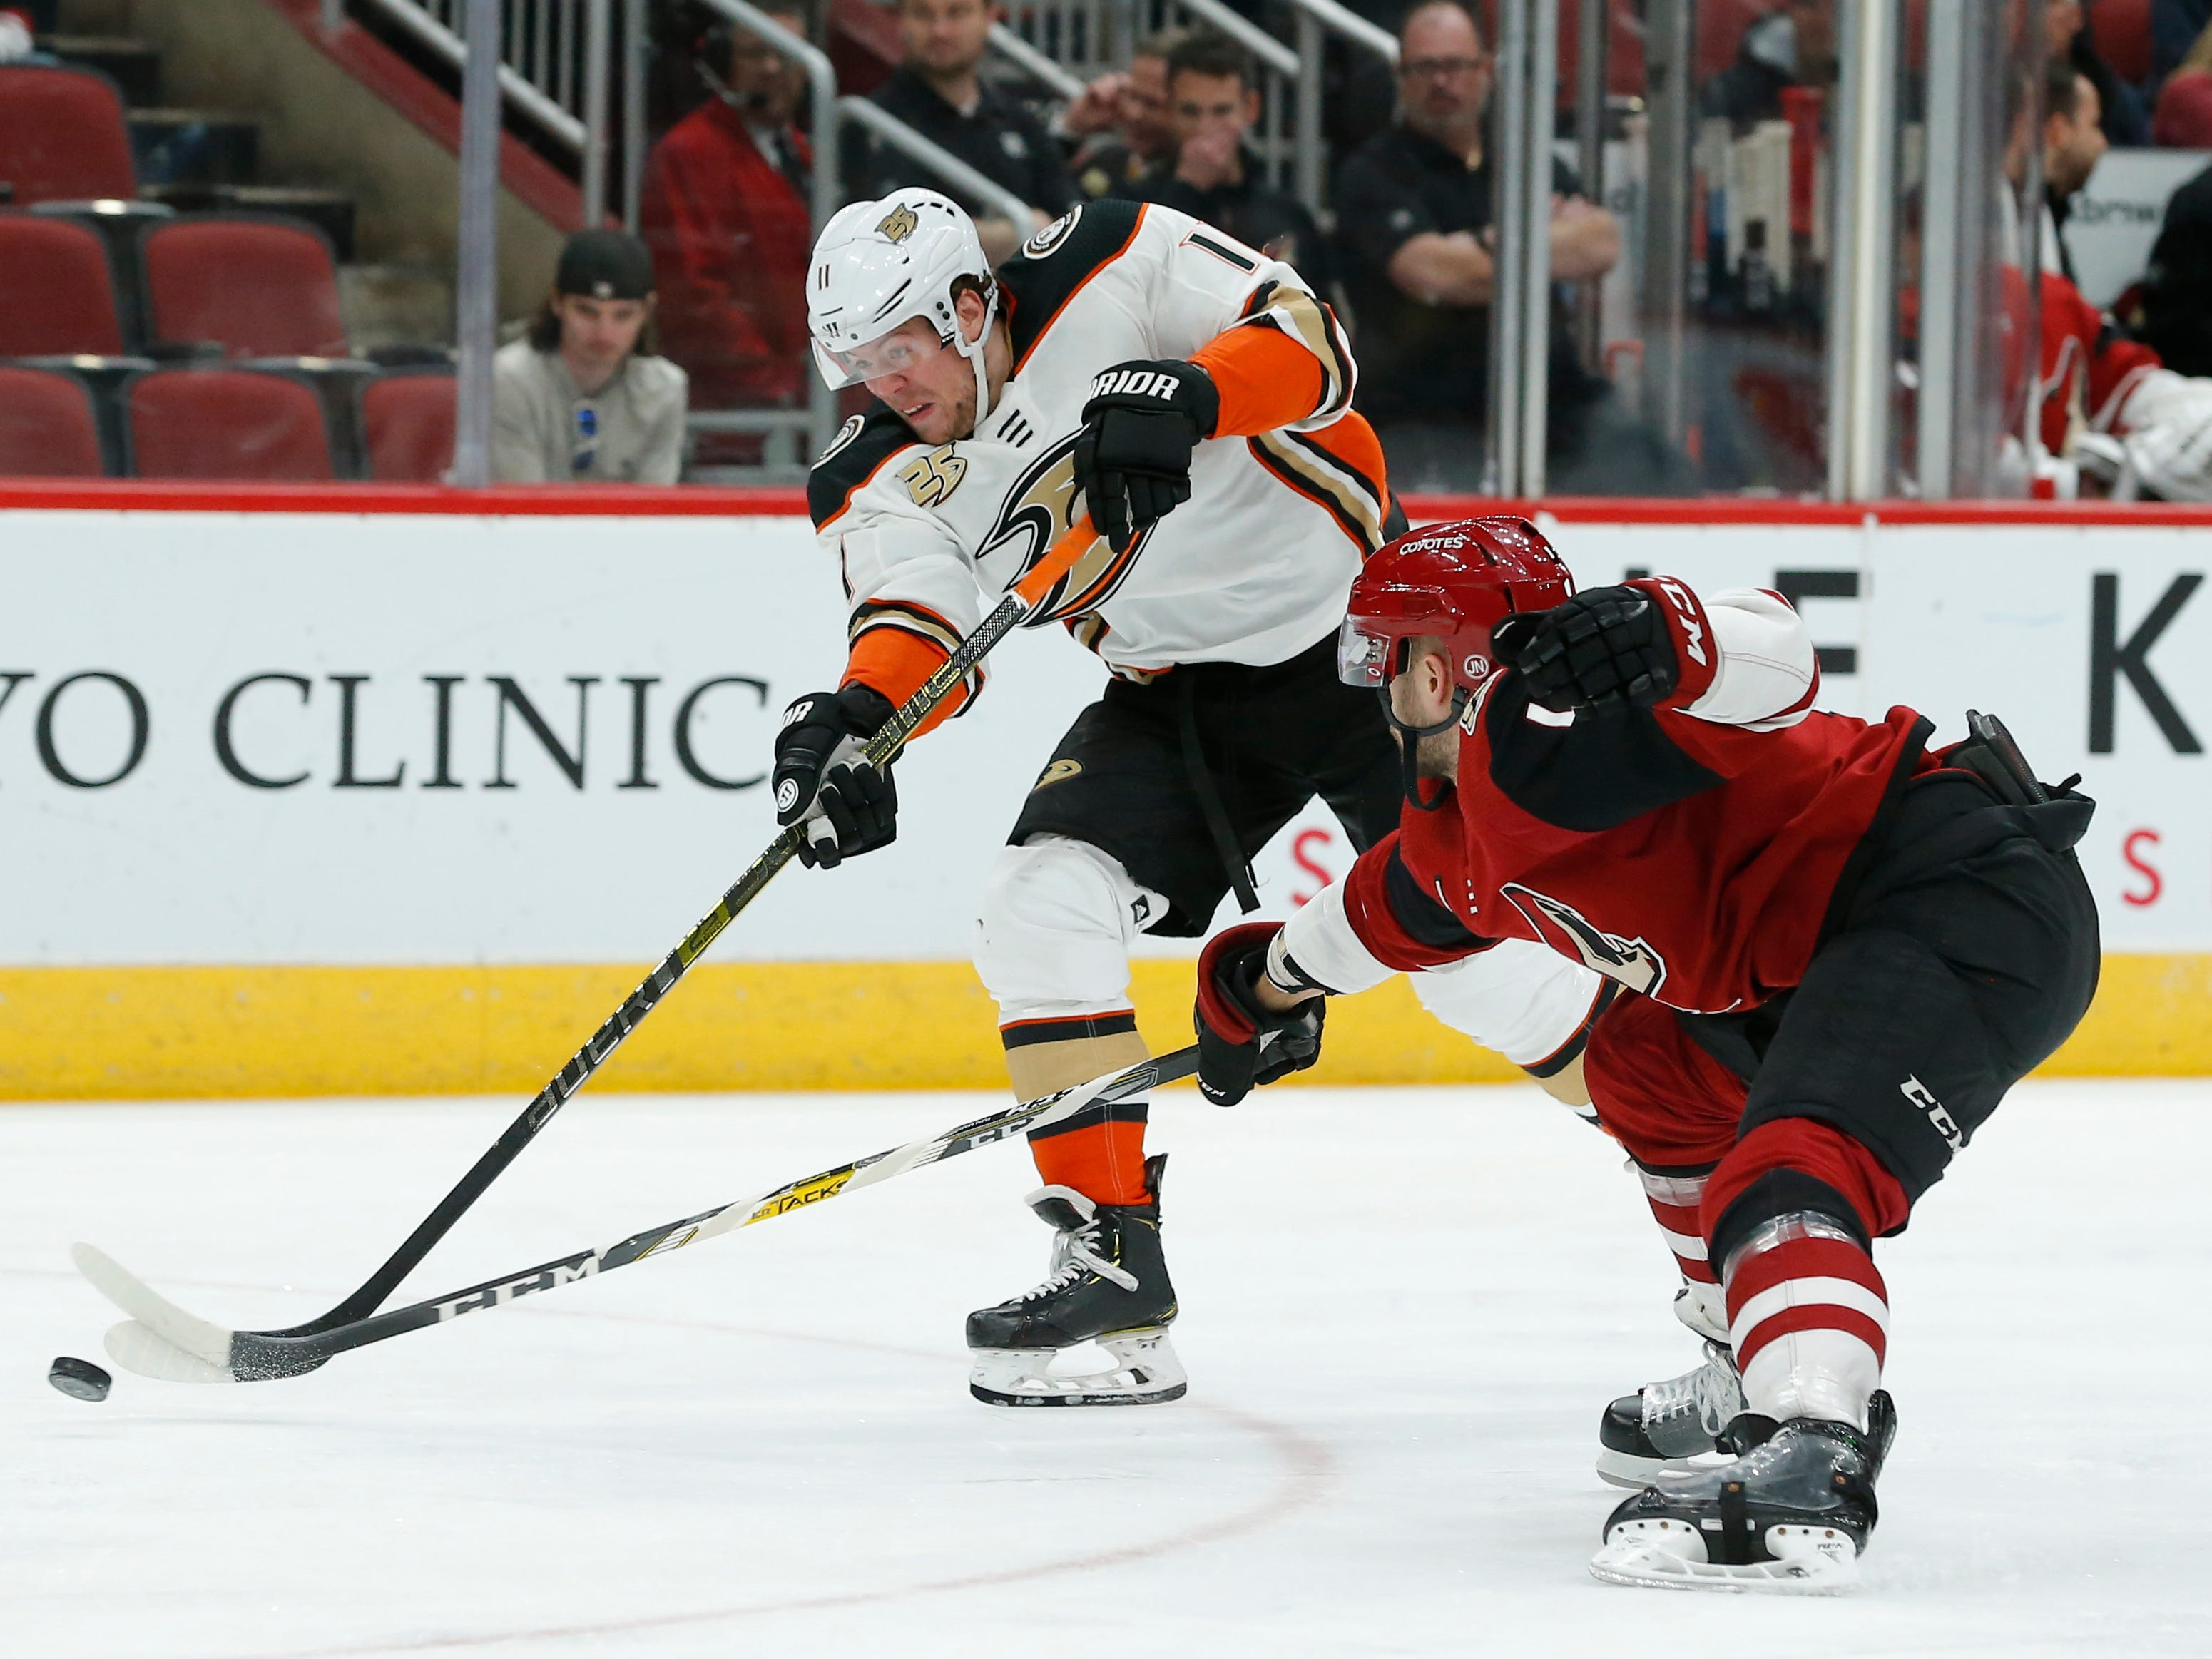 Anaheim Ducks right wing Daniel Sprong (11) shoots in front of Arizona Coyotes defenseman Niklas Hjalmarsson in the first period during an NHL hockey game, Thursday, March 14, 2019, in Glendale, Ariz.